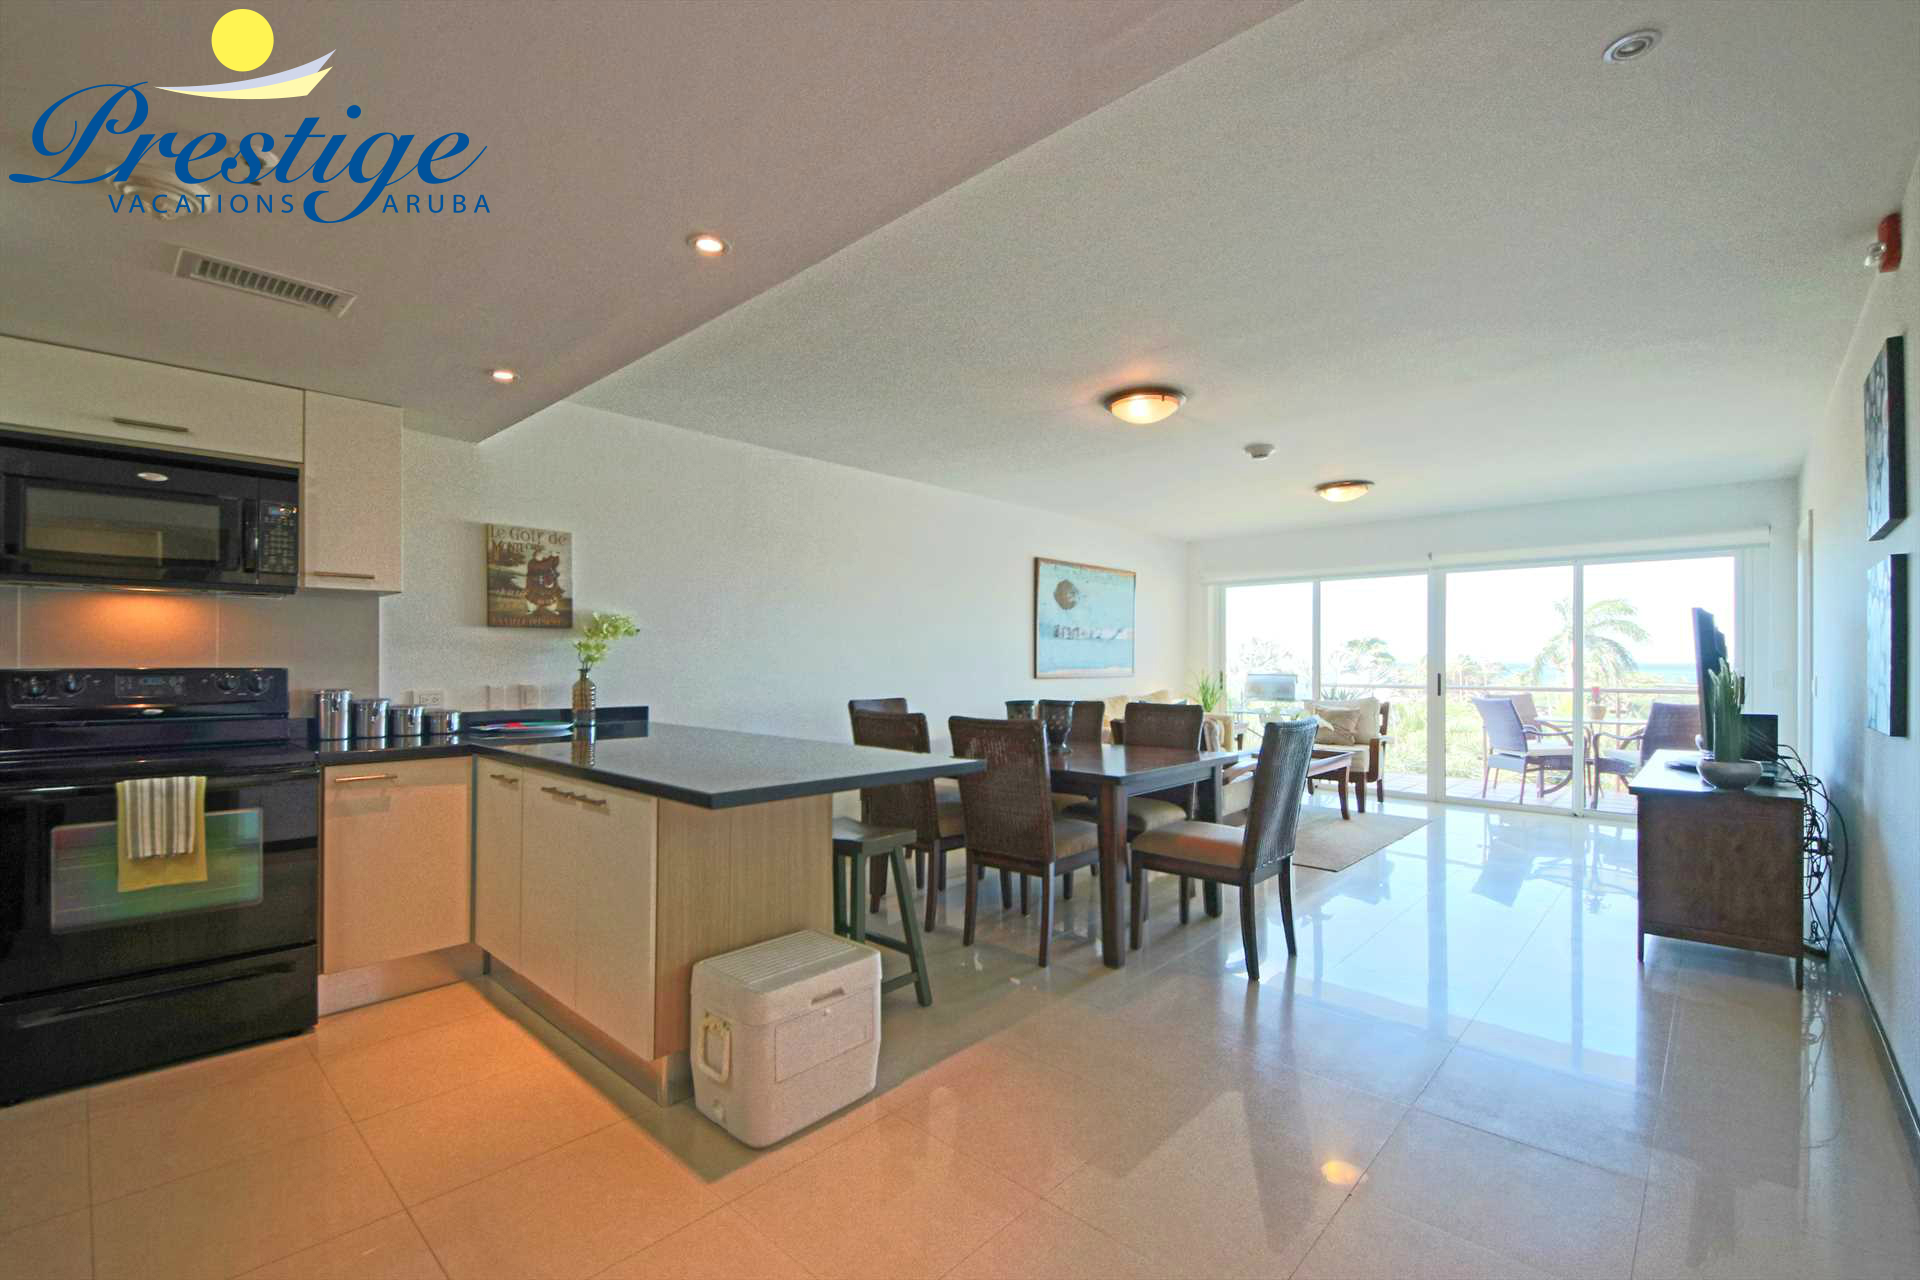 Full view of your beach vacation rental condo